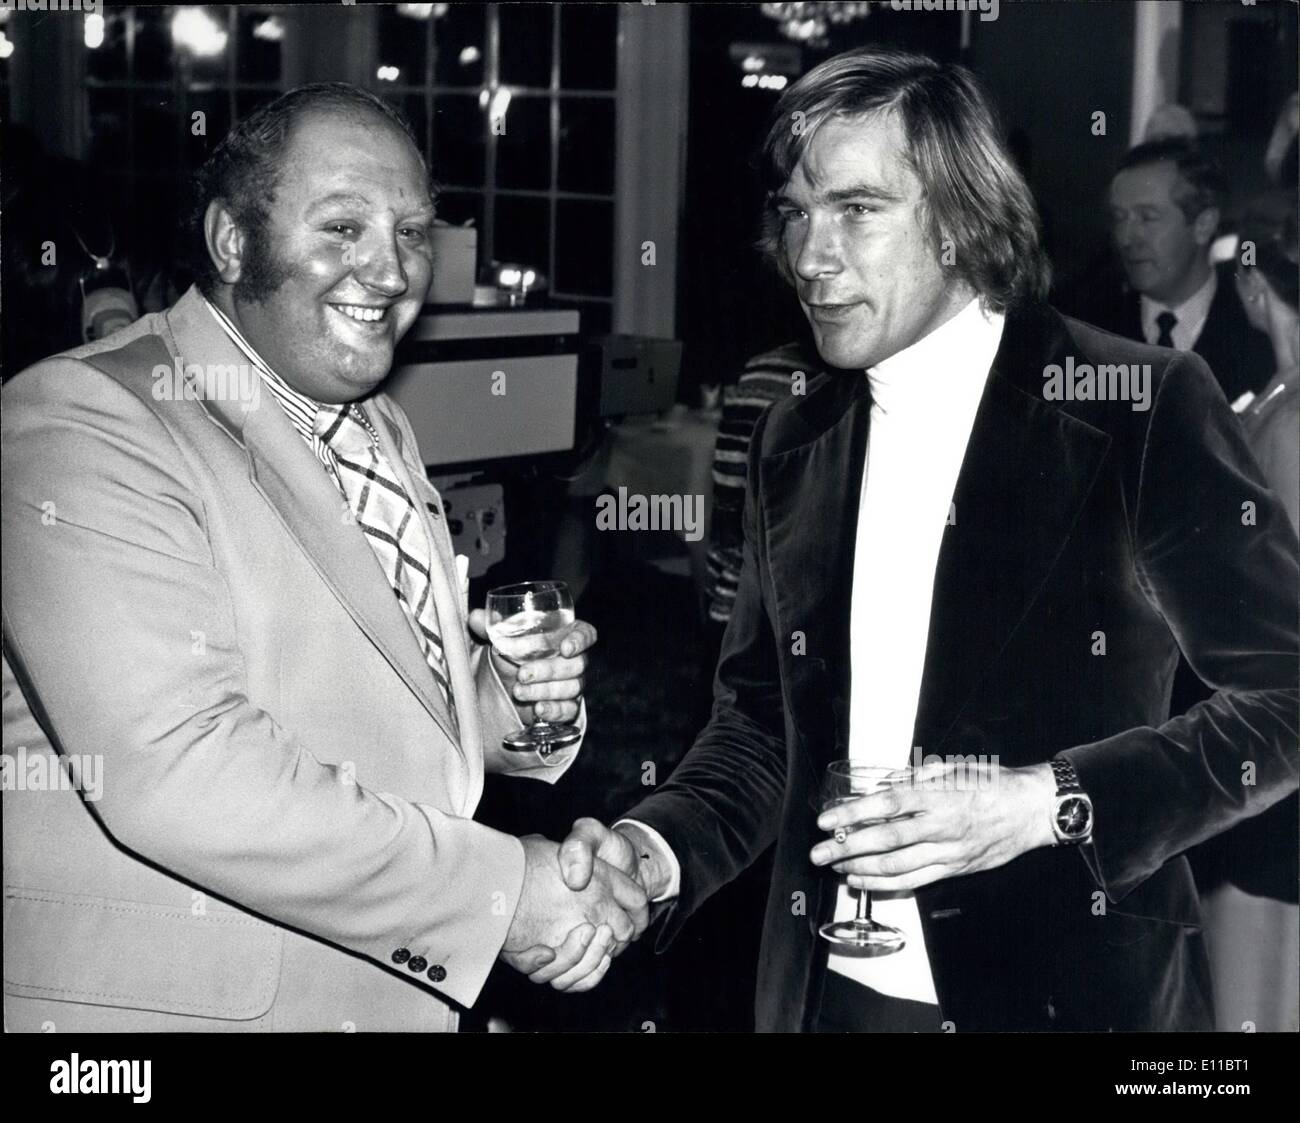 Dec. 12, 1976 - James Hunt and Gerry Marshall are Still Good Friends: World champion racing driver, James Hunt was involved in an incident with saloon car racing driver Gerry Marshall on Friday last at the British Racing Drivers Club ball at London's Dorchester Hotel. The incident arose when Gerry Marshall went to introduce a friend to James Hunt on the next table. As Gerry turned round to James the glass of gin and tonic that Gerry was holding was tipped into his face, the glass cutting his forehead. James Hunt has apologized to Gerry Marshall who was ready to forgive and forget - Stock Image